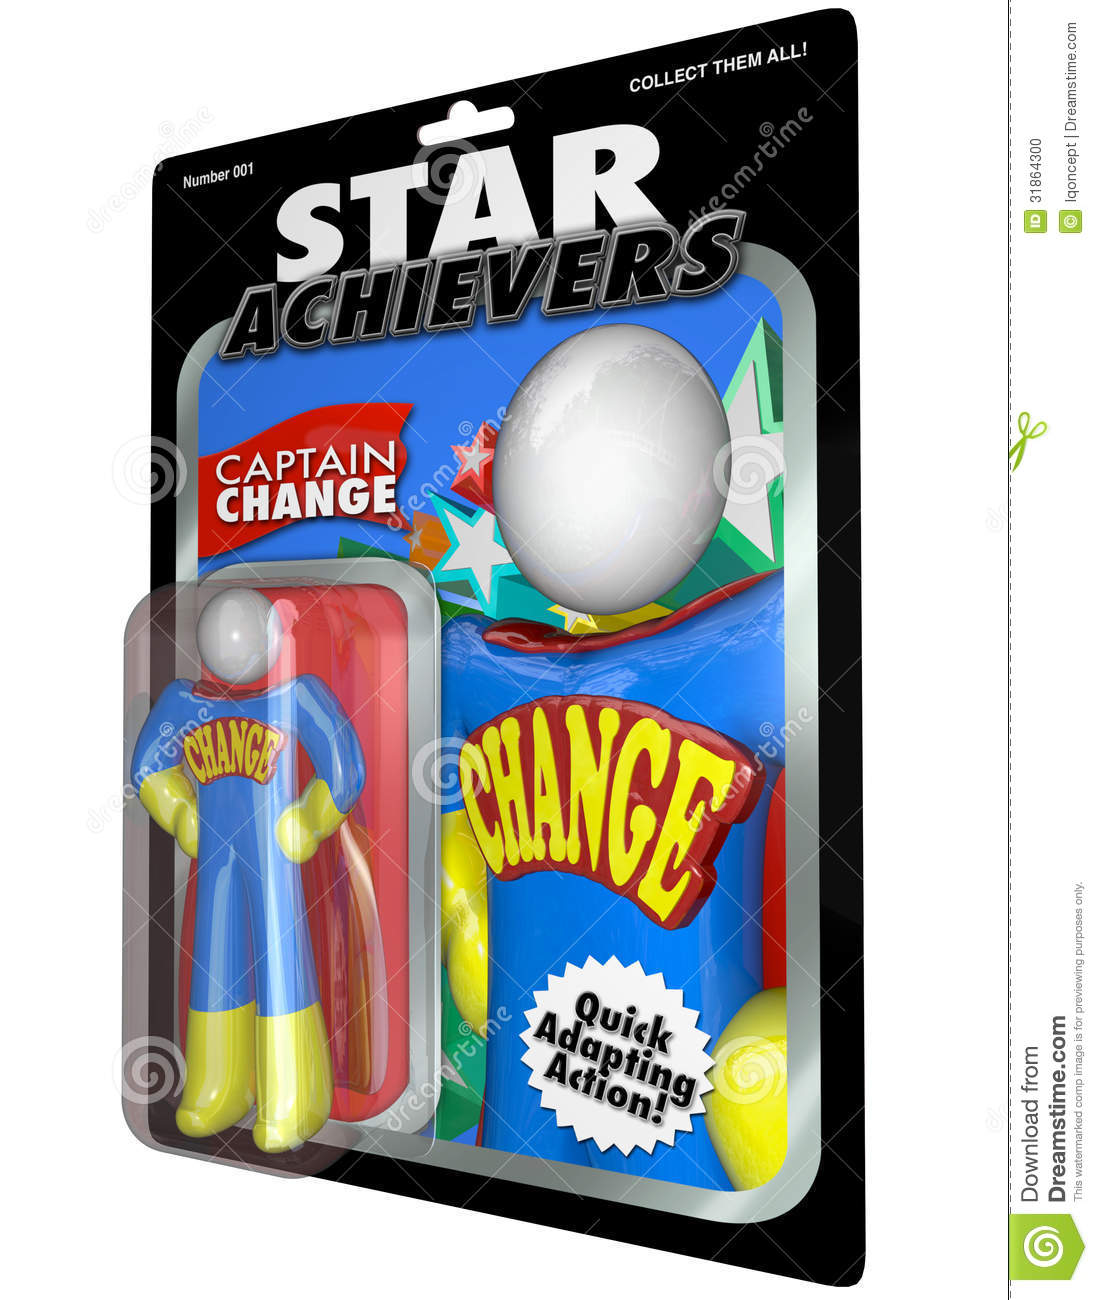 Change Action Figure - Adjust and Adapt with Successful Leader